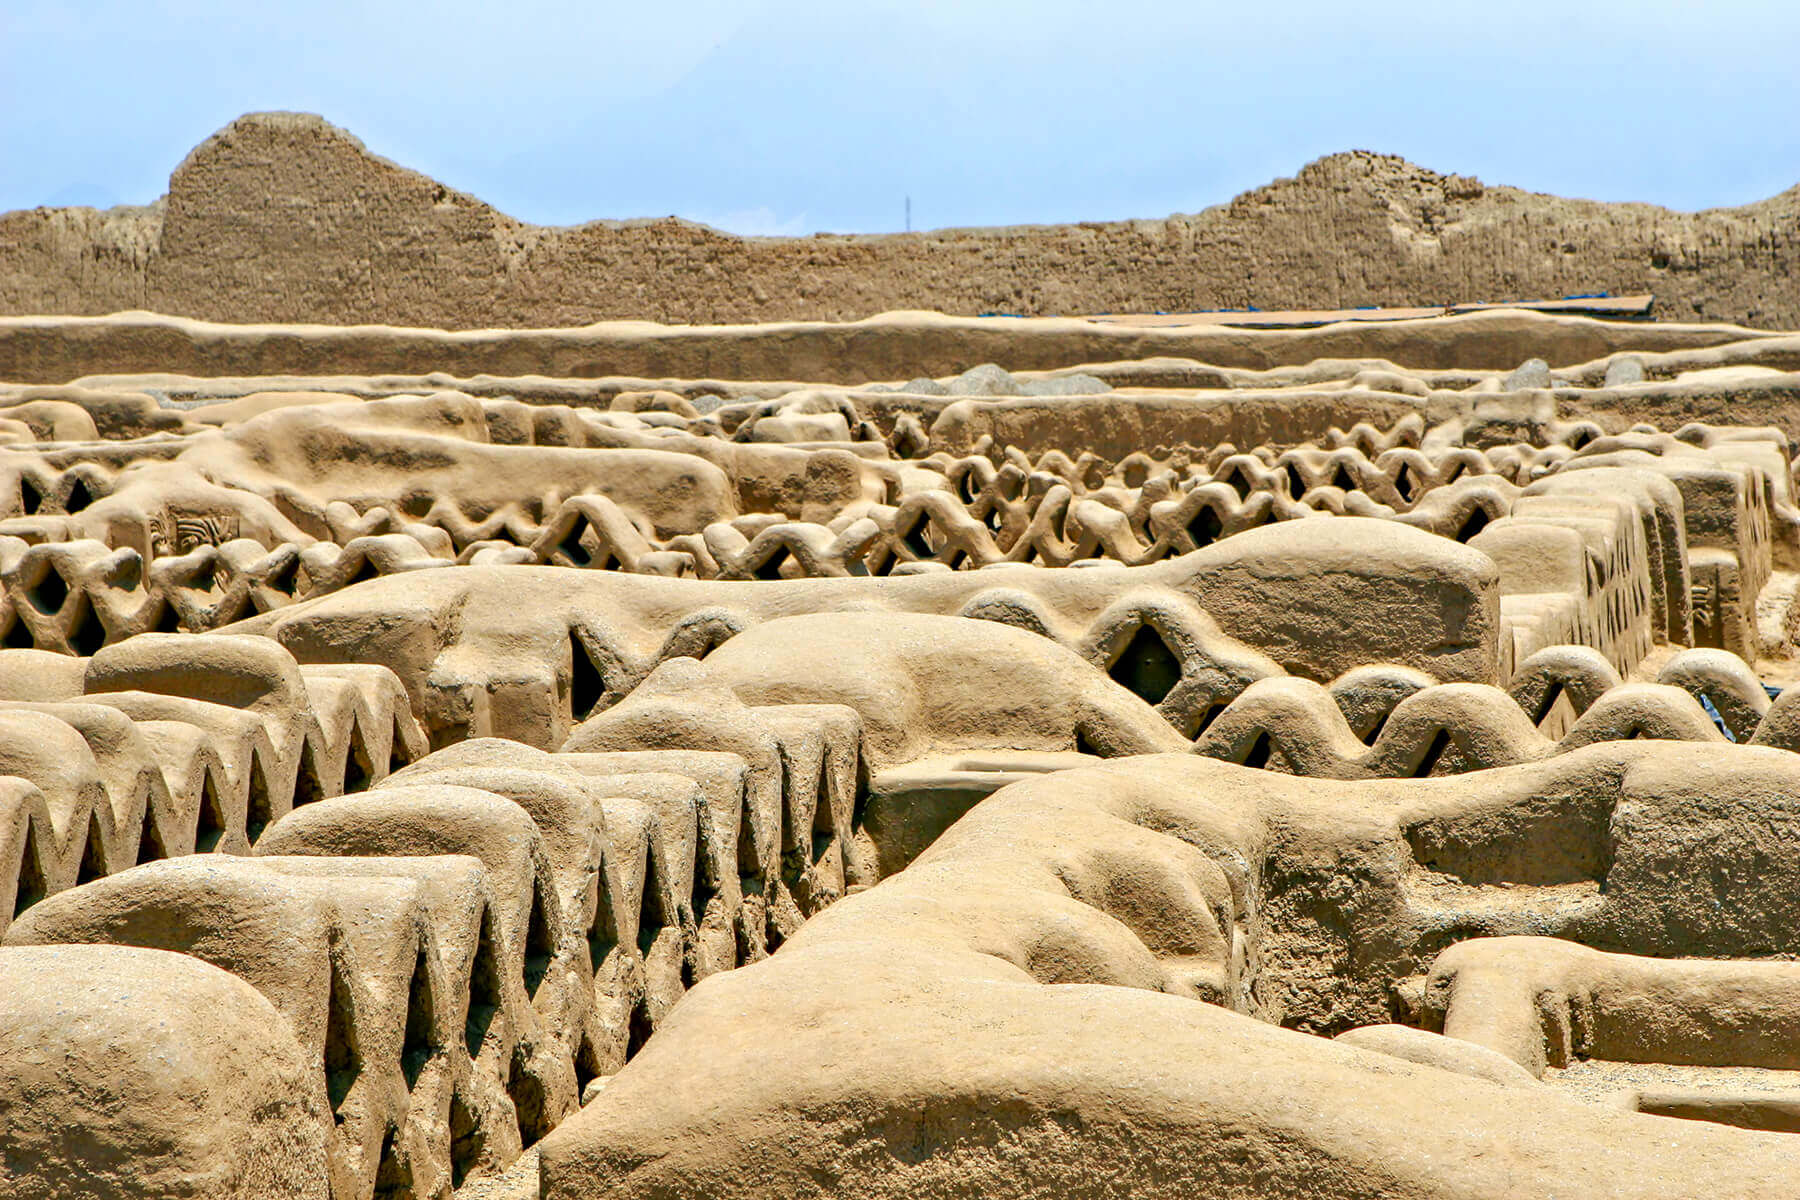 The Chan Chan ruins in Peru are the remains of the largest Pre-Columbian city in South America